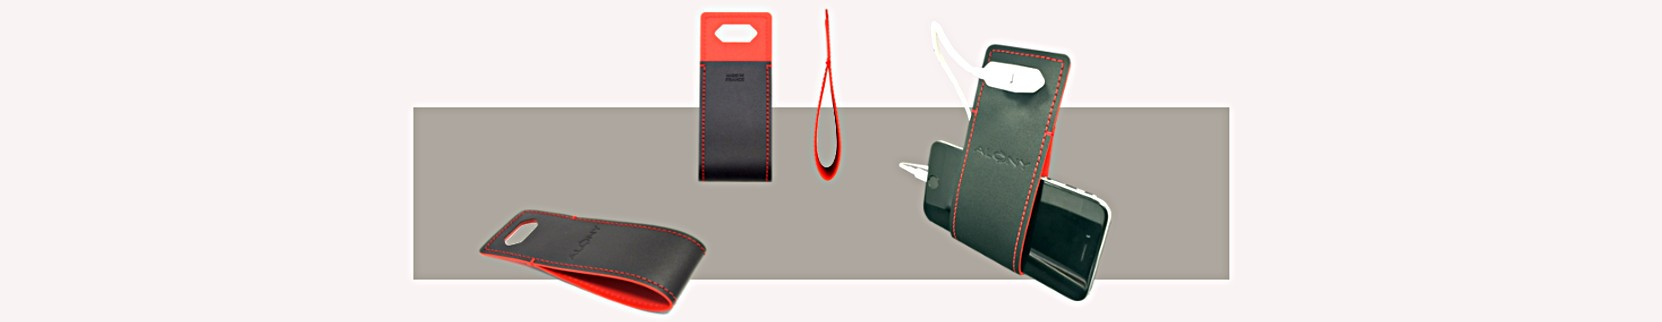 Support chargeur smartphone